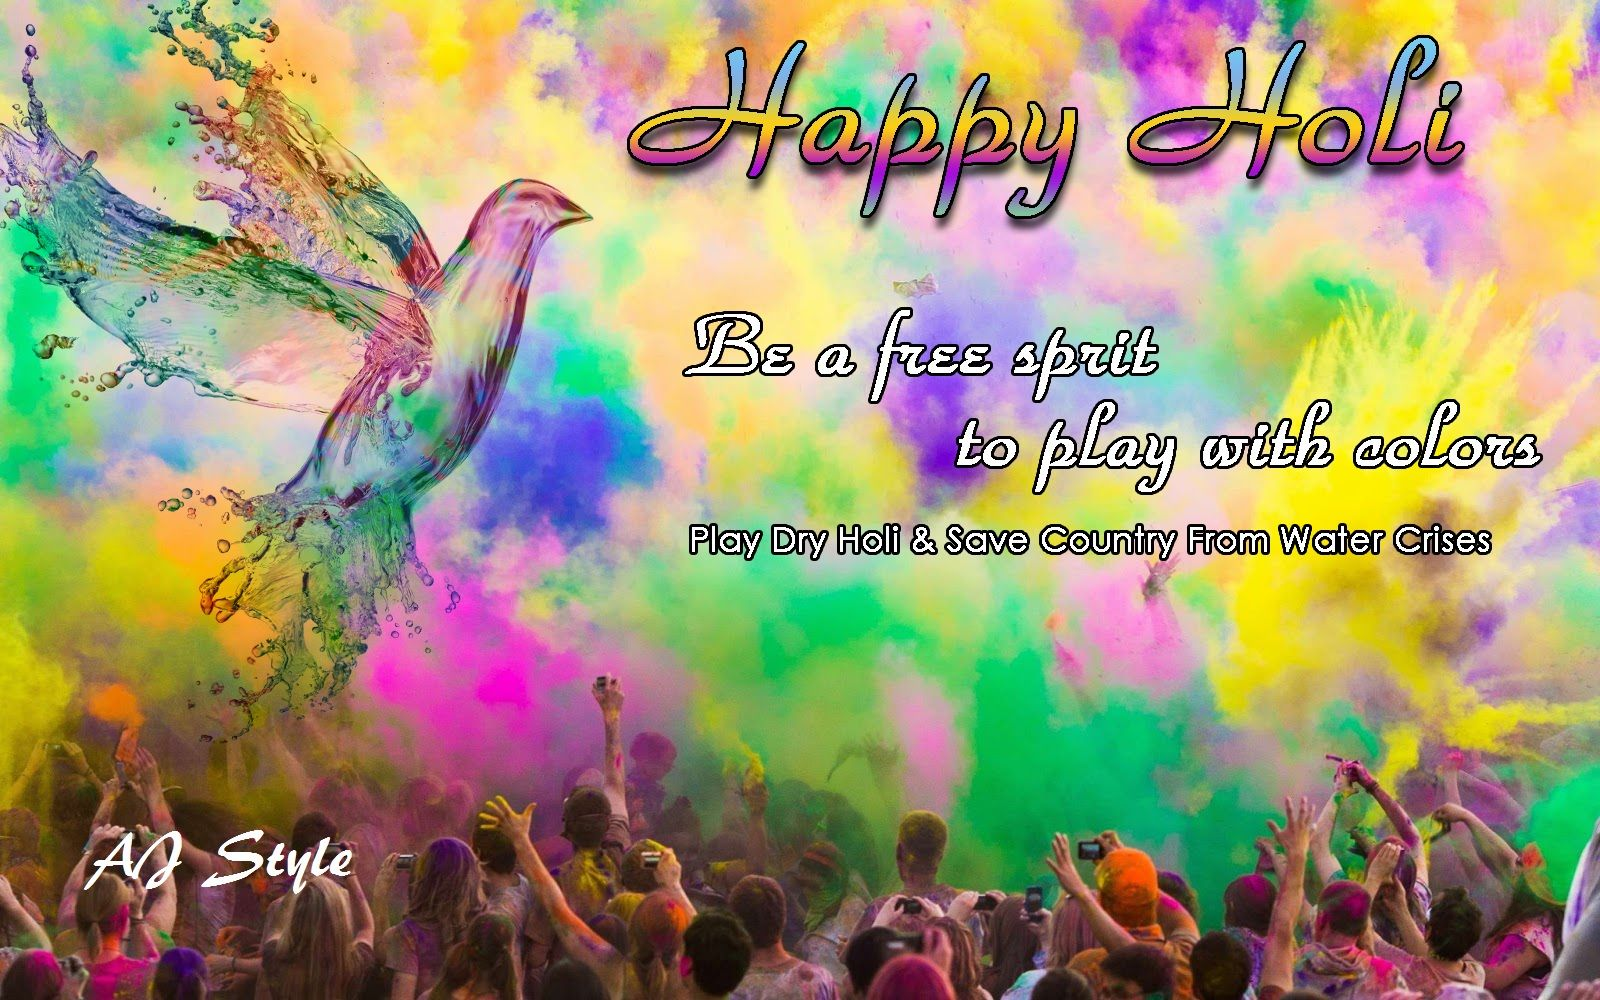 Holi 2022 Date In India Calendar.Holi Dates When Is Holi In 2021 2022 And 2023 Talk So Much